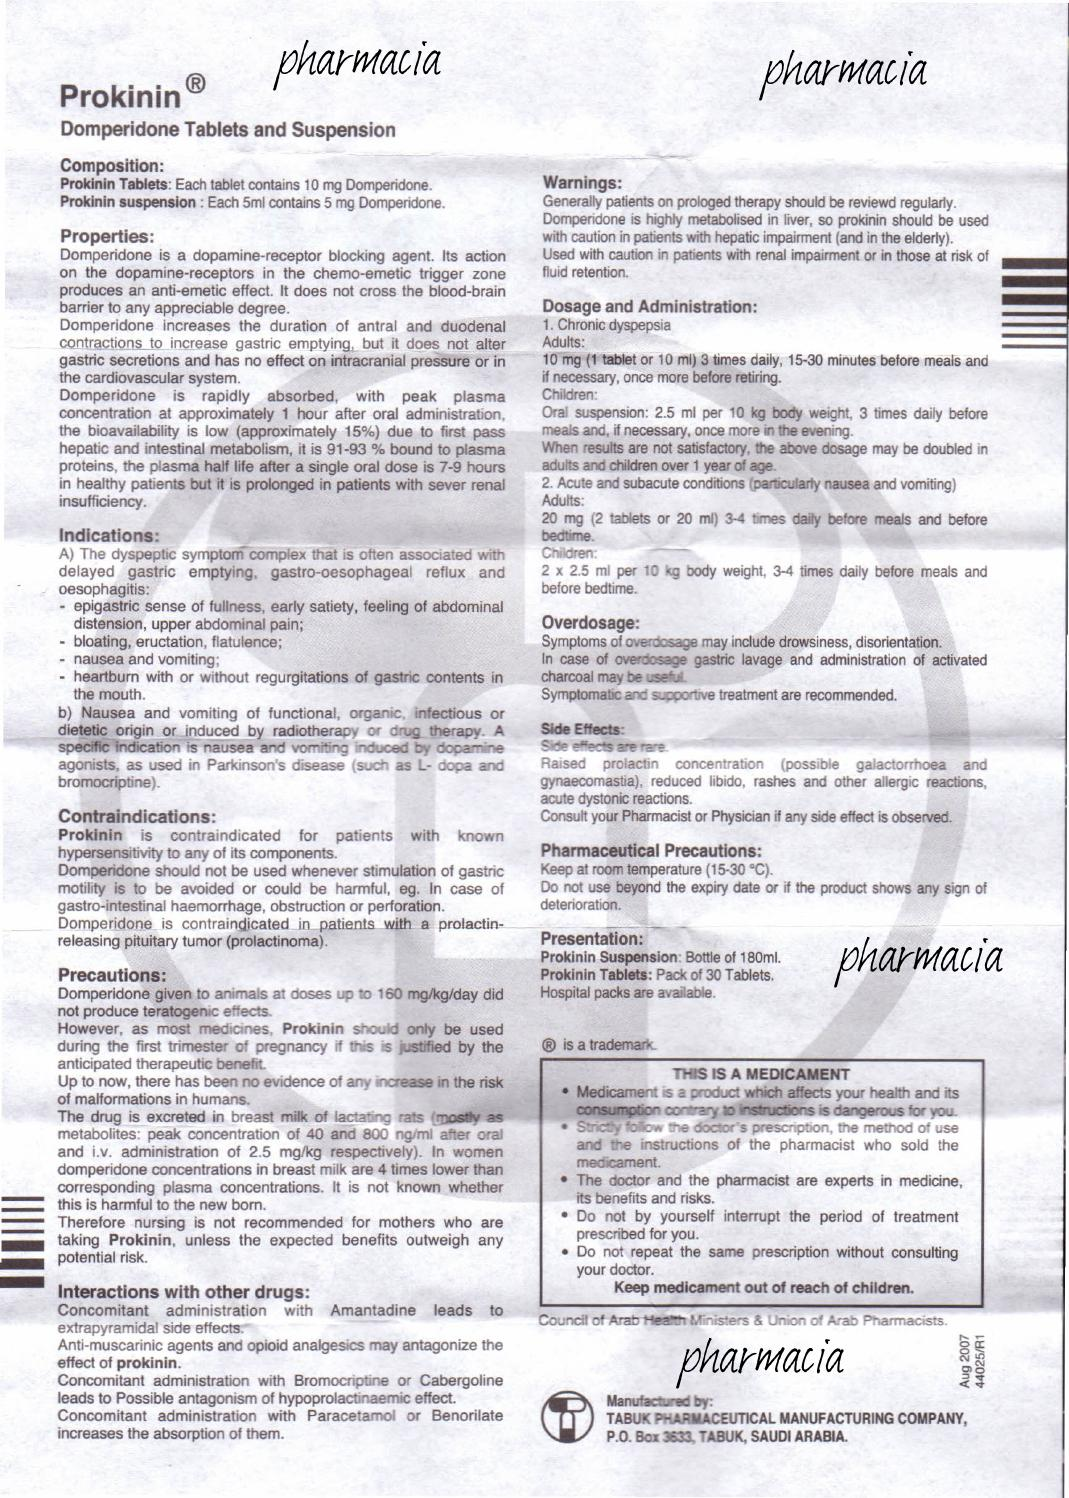 Dostinex 0 5mg tablets.doc - Prokinin Tablet Susp Patient Information Leaflet By Pharmacia1 Issuu